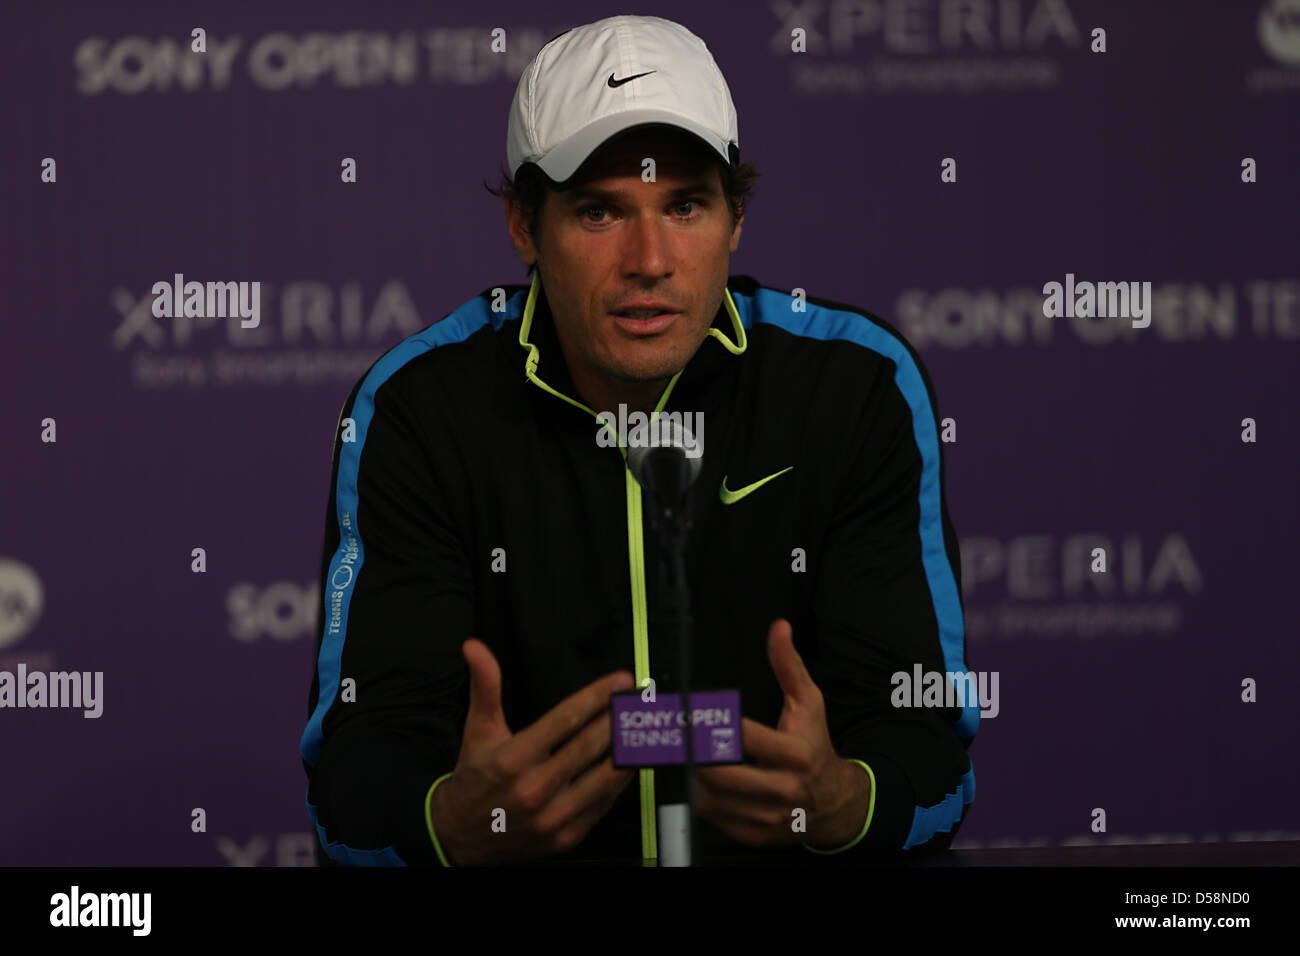 Miami, Florida, USA. 26th March 2013. Tommy Haas of Germany speaks during press conference of Day 9 after defeating - Stock Image